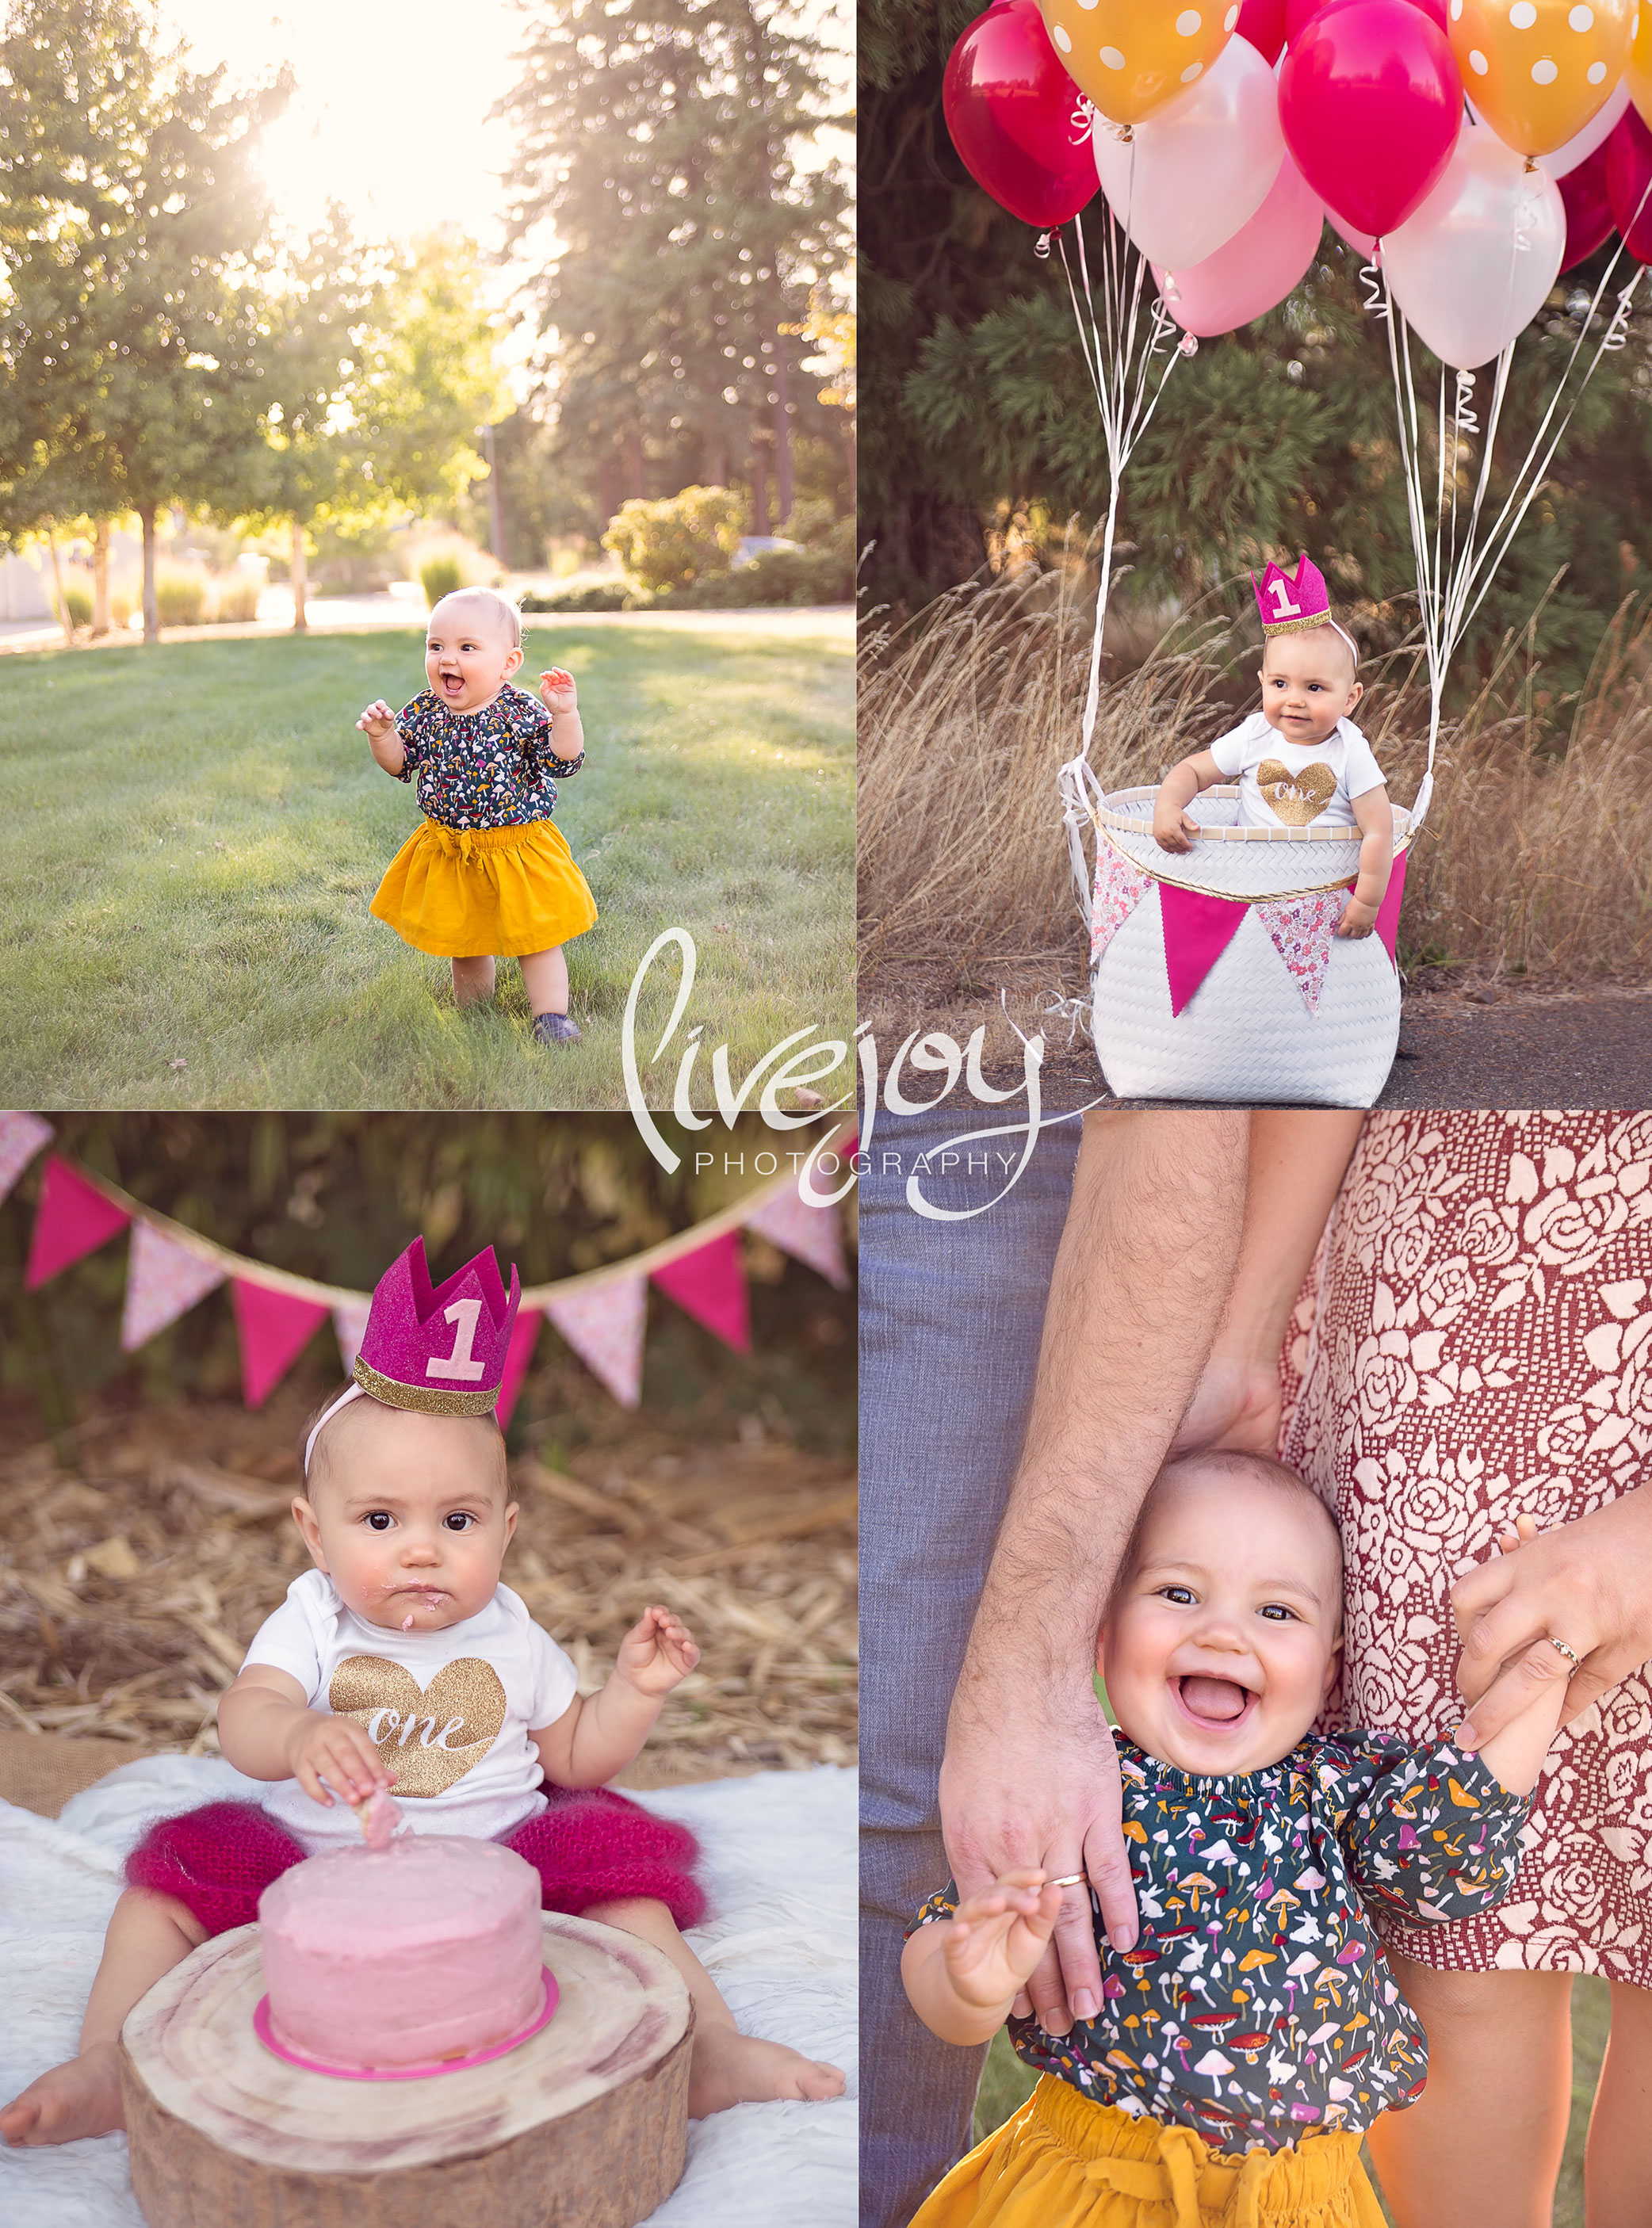 1 Year and Cake Smash Baby Photography | Oregon | Livejoy Photography